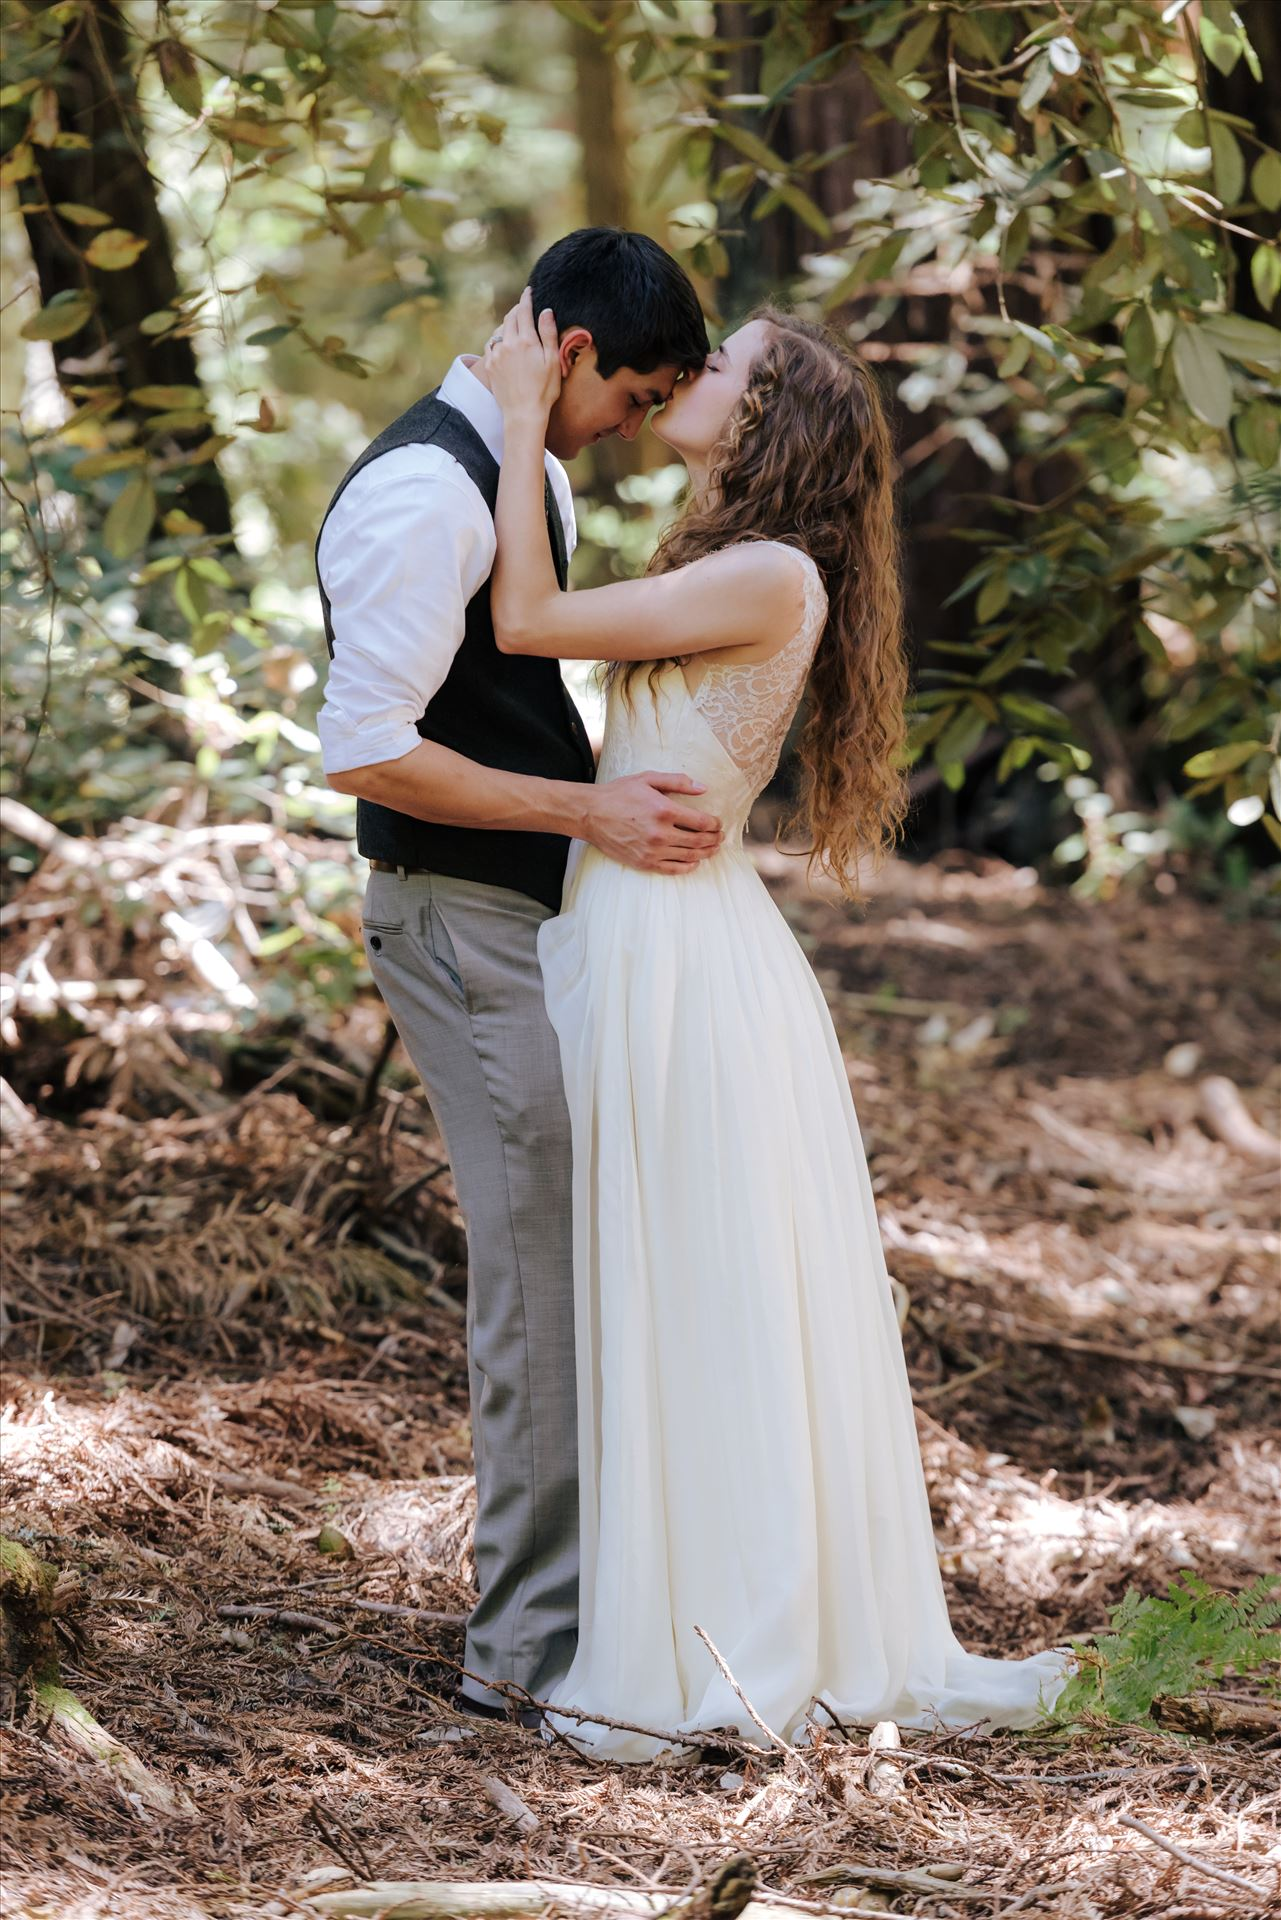 FW-6044.JPGMt Madonna wedding in the redwoods outside of Watsonville, California with a romantic and classic vibe by sarah williams of mirror's edge photography a san luis obispo wedding photographer.  Bride kisses groom in the trees